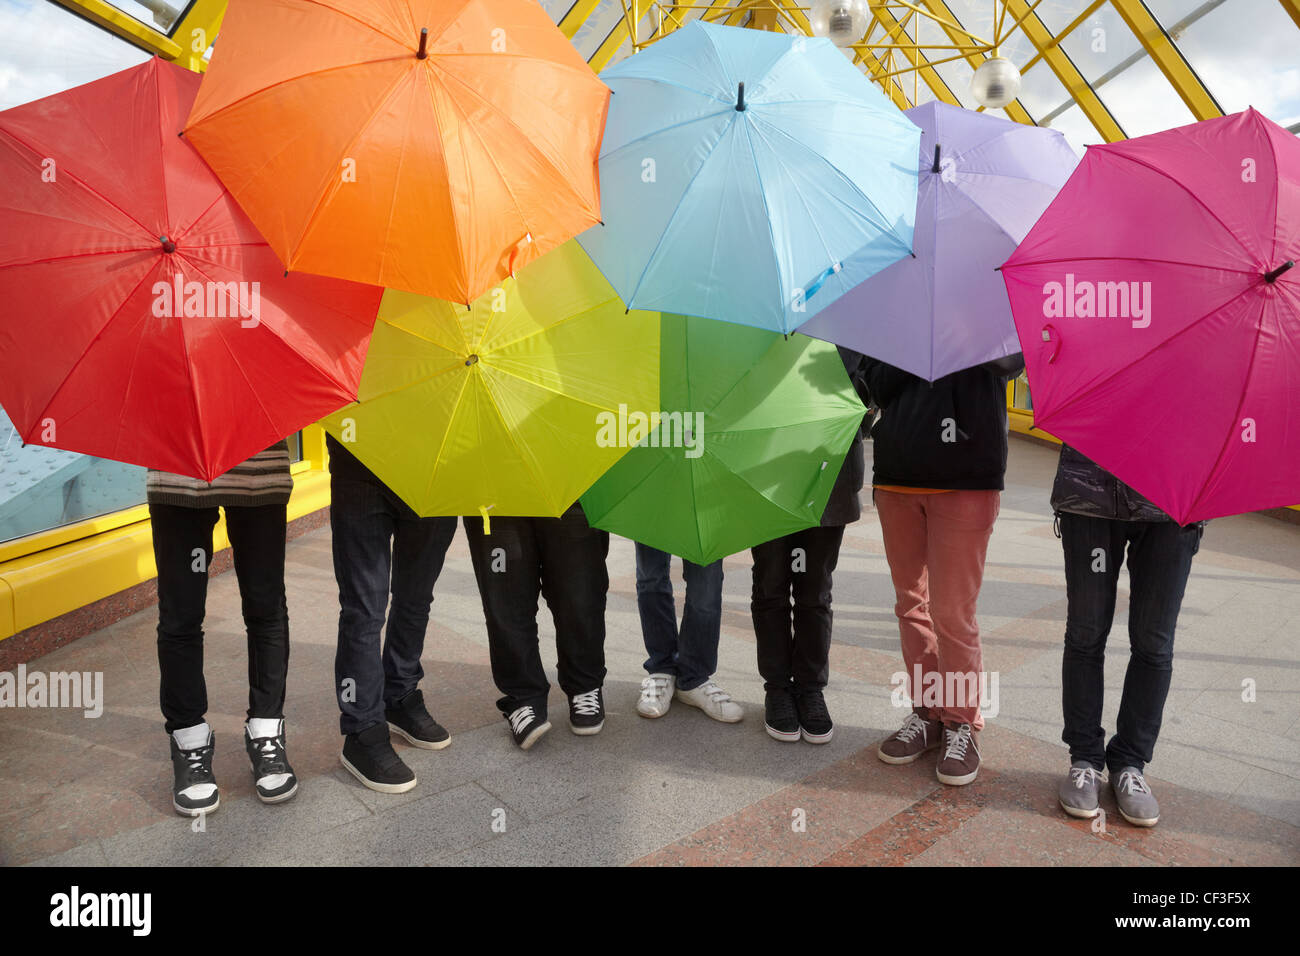 seven teens with opened umbrellas in pedestrian overpass - Stock Image